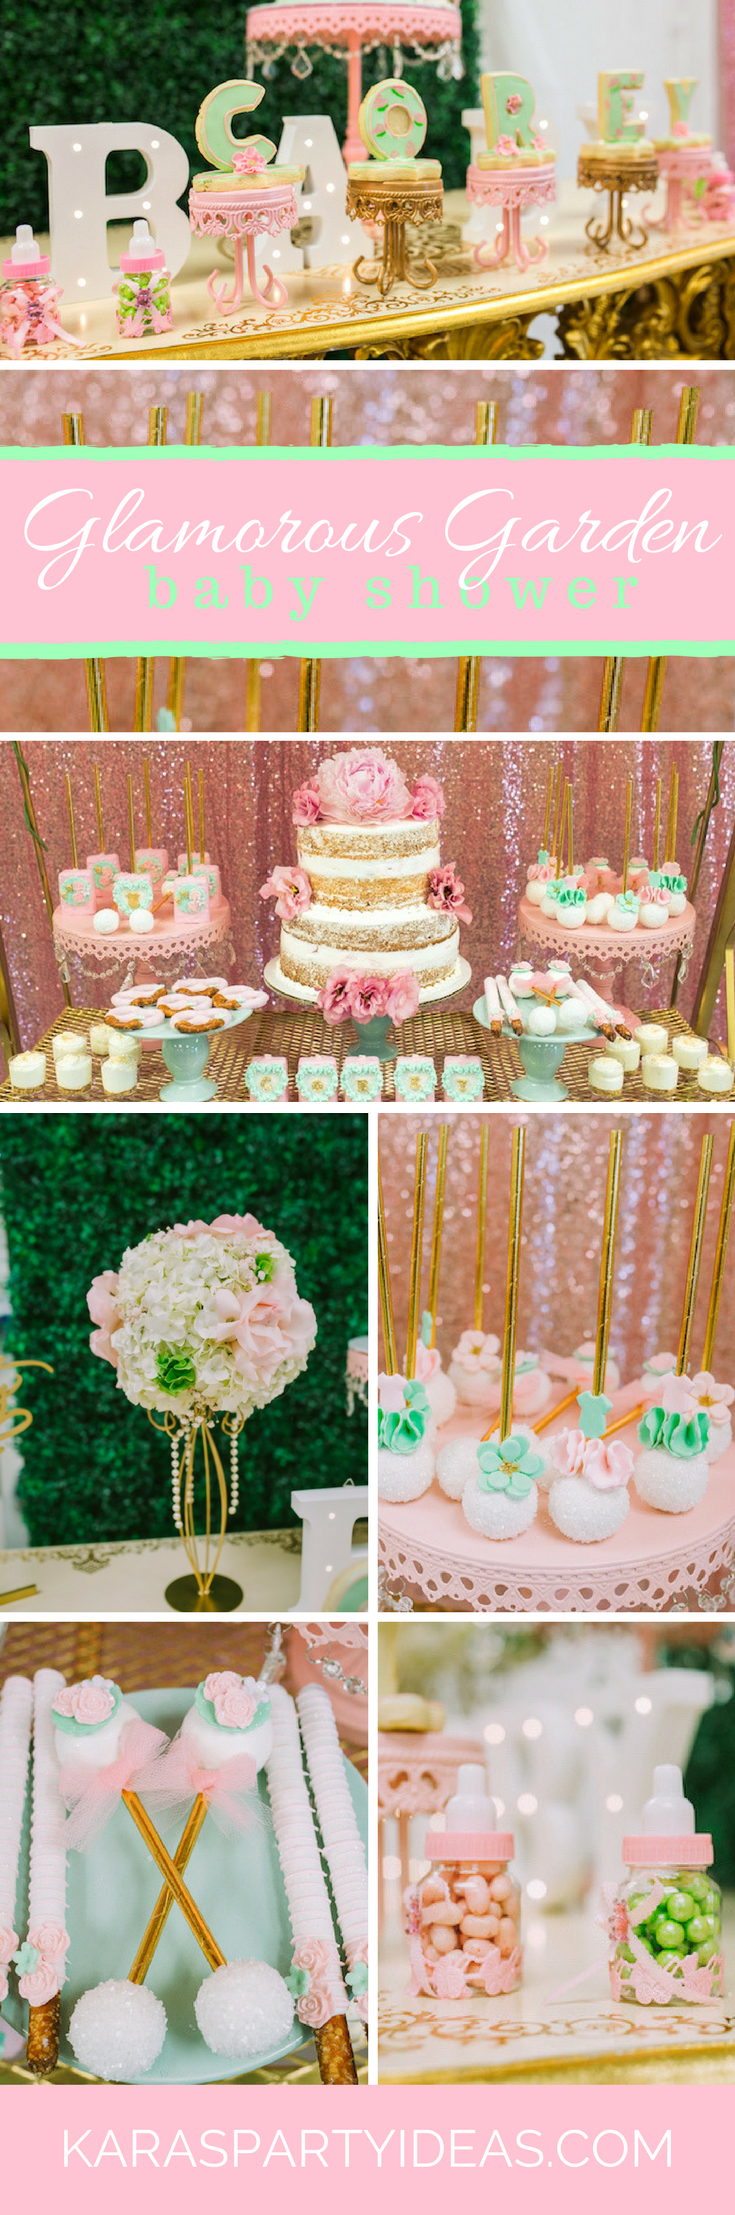 glamorous garden baby shower via karas party ideas karaspartyideascom